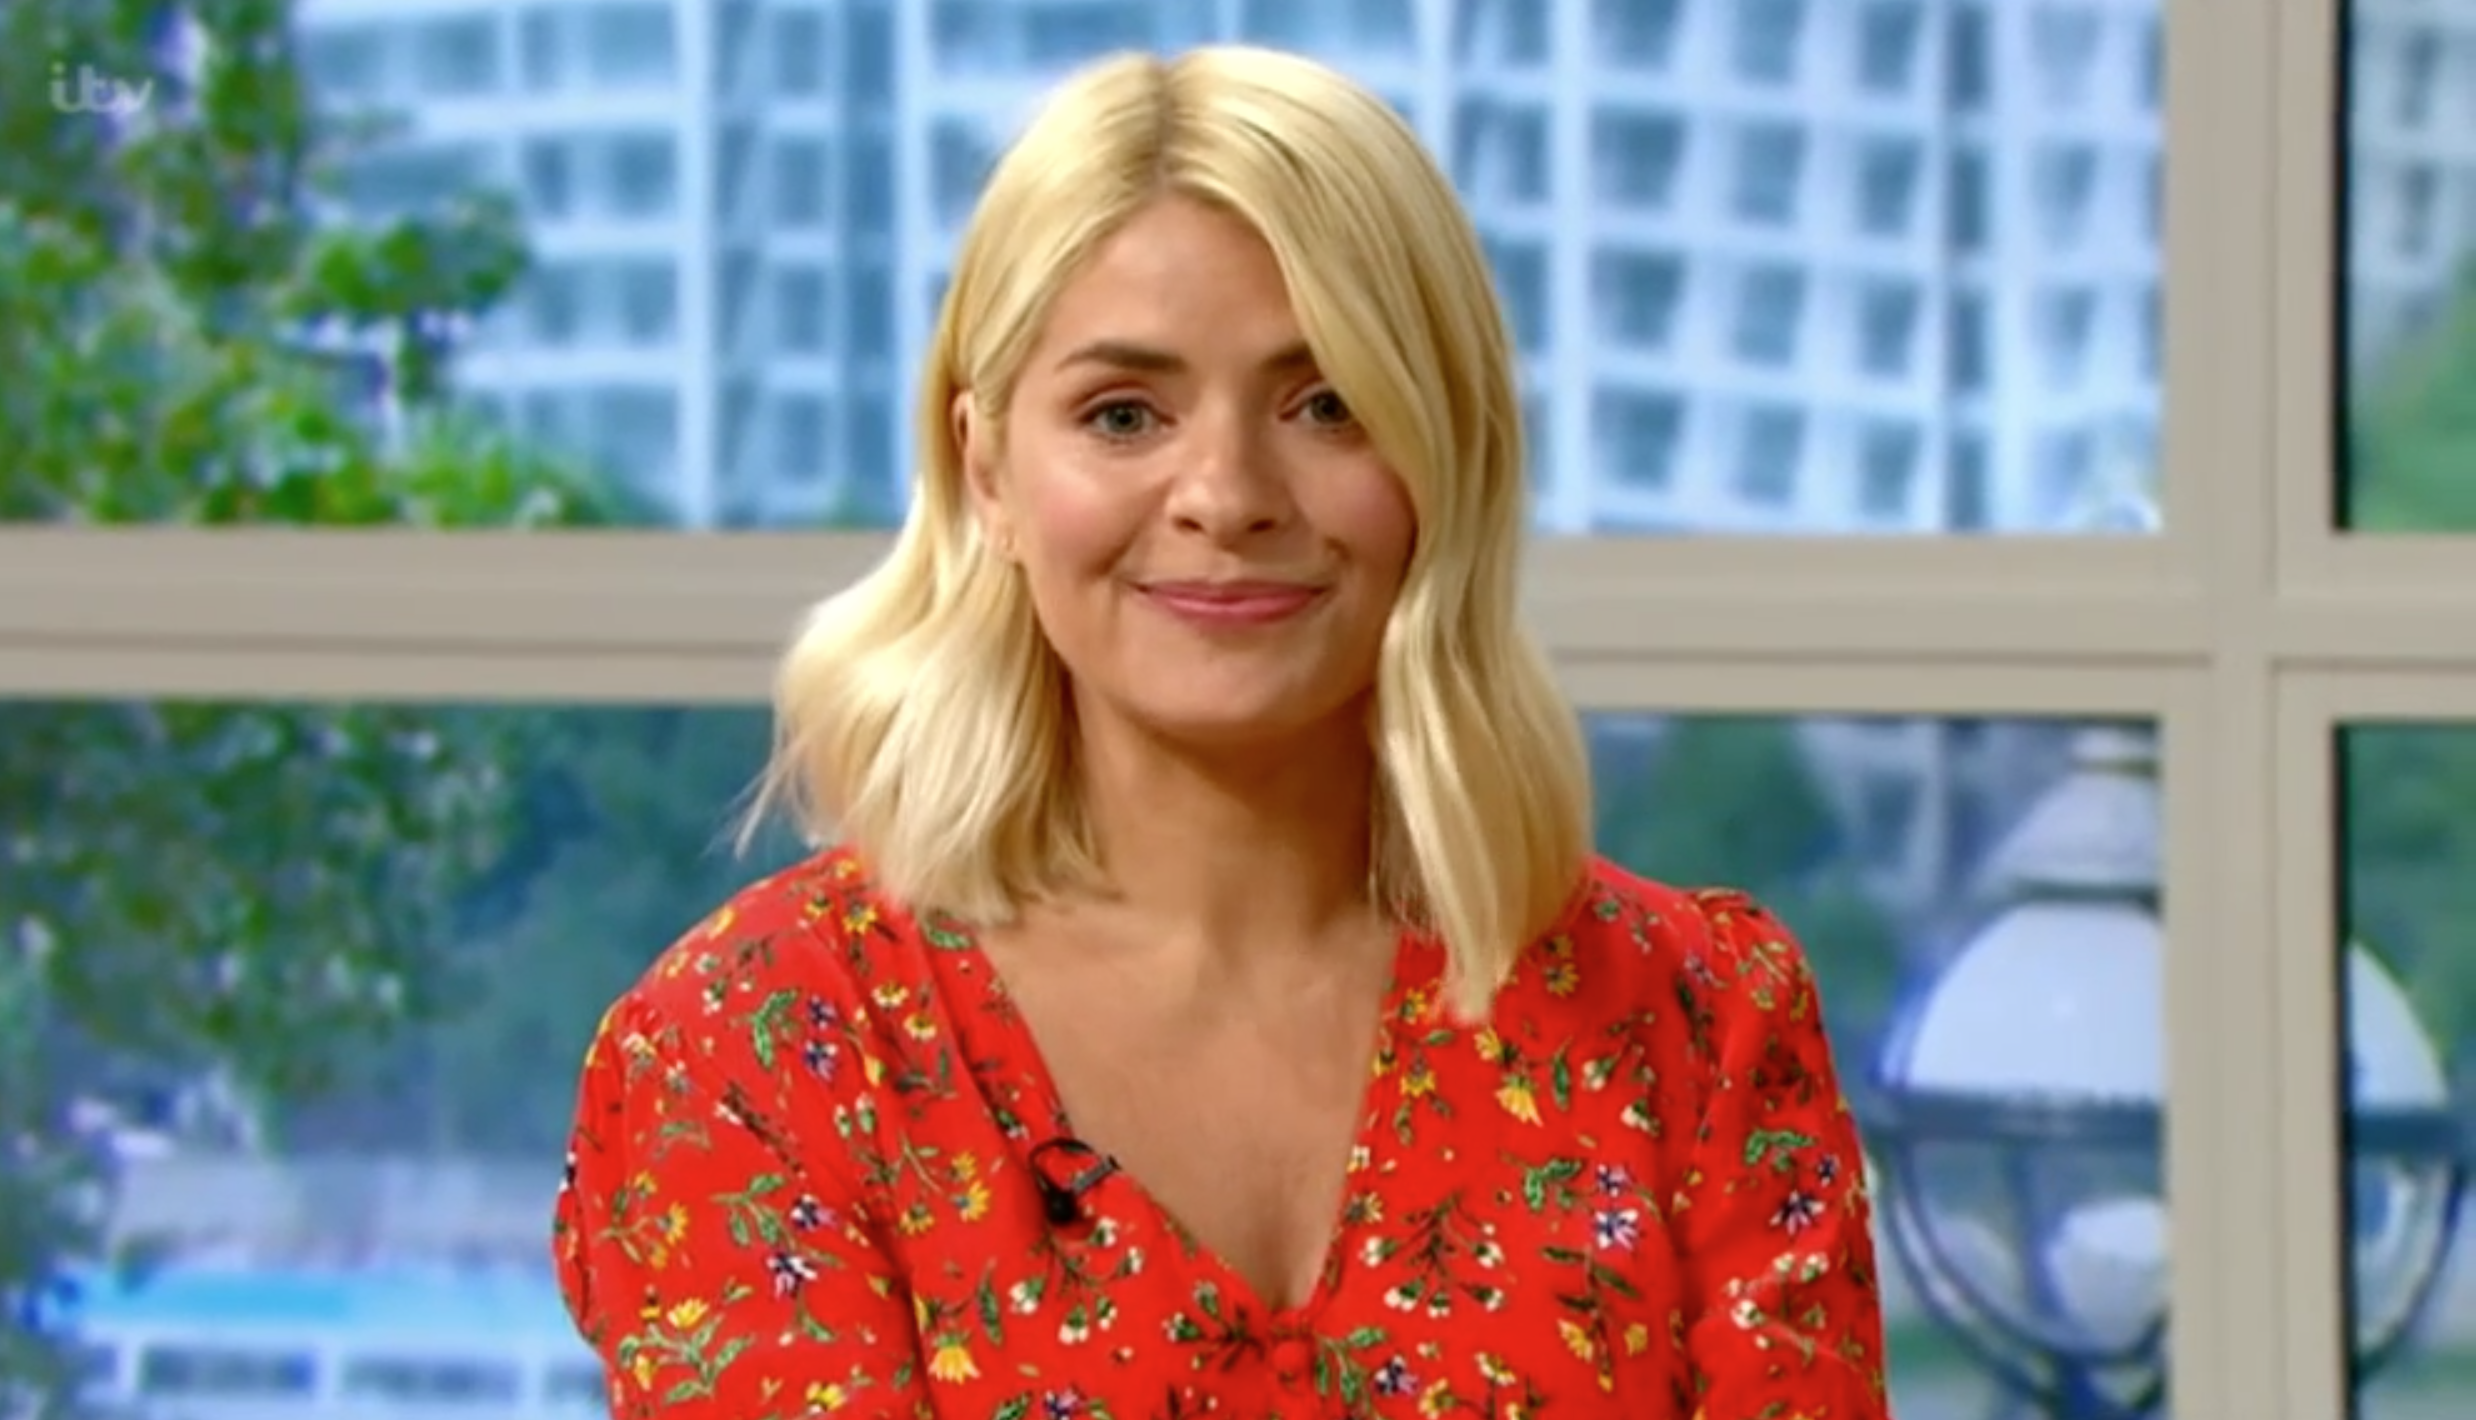 This Morning viewers thank Holly Willoughby for bringing the sunshine in her glorious summer dress